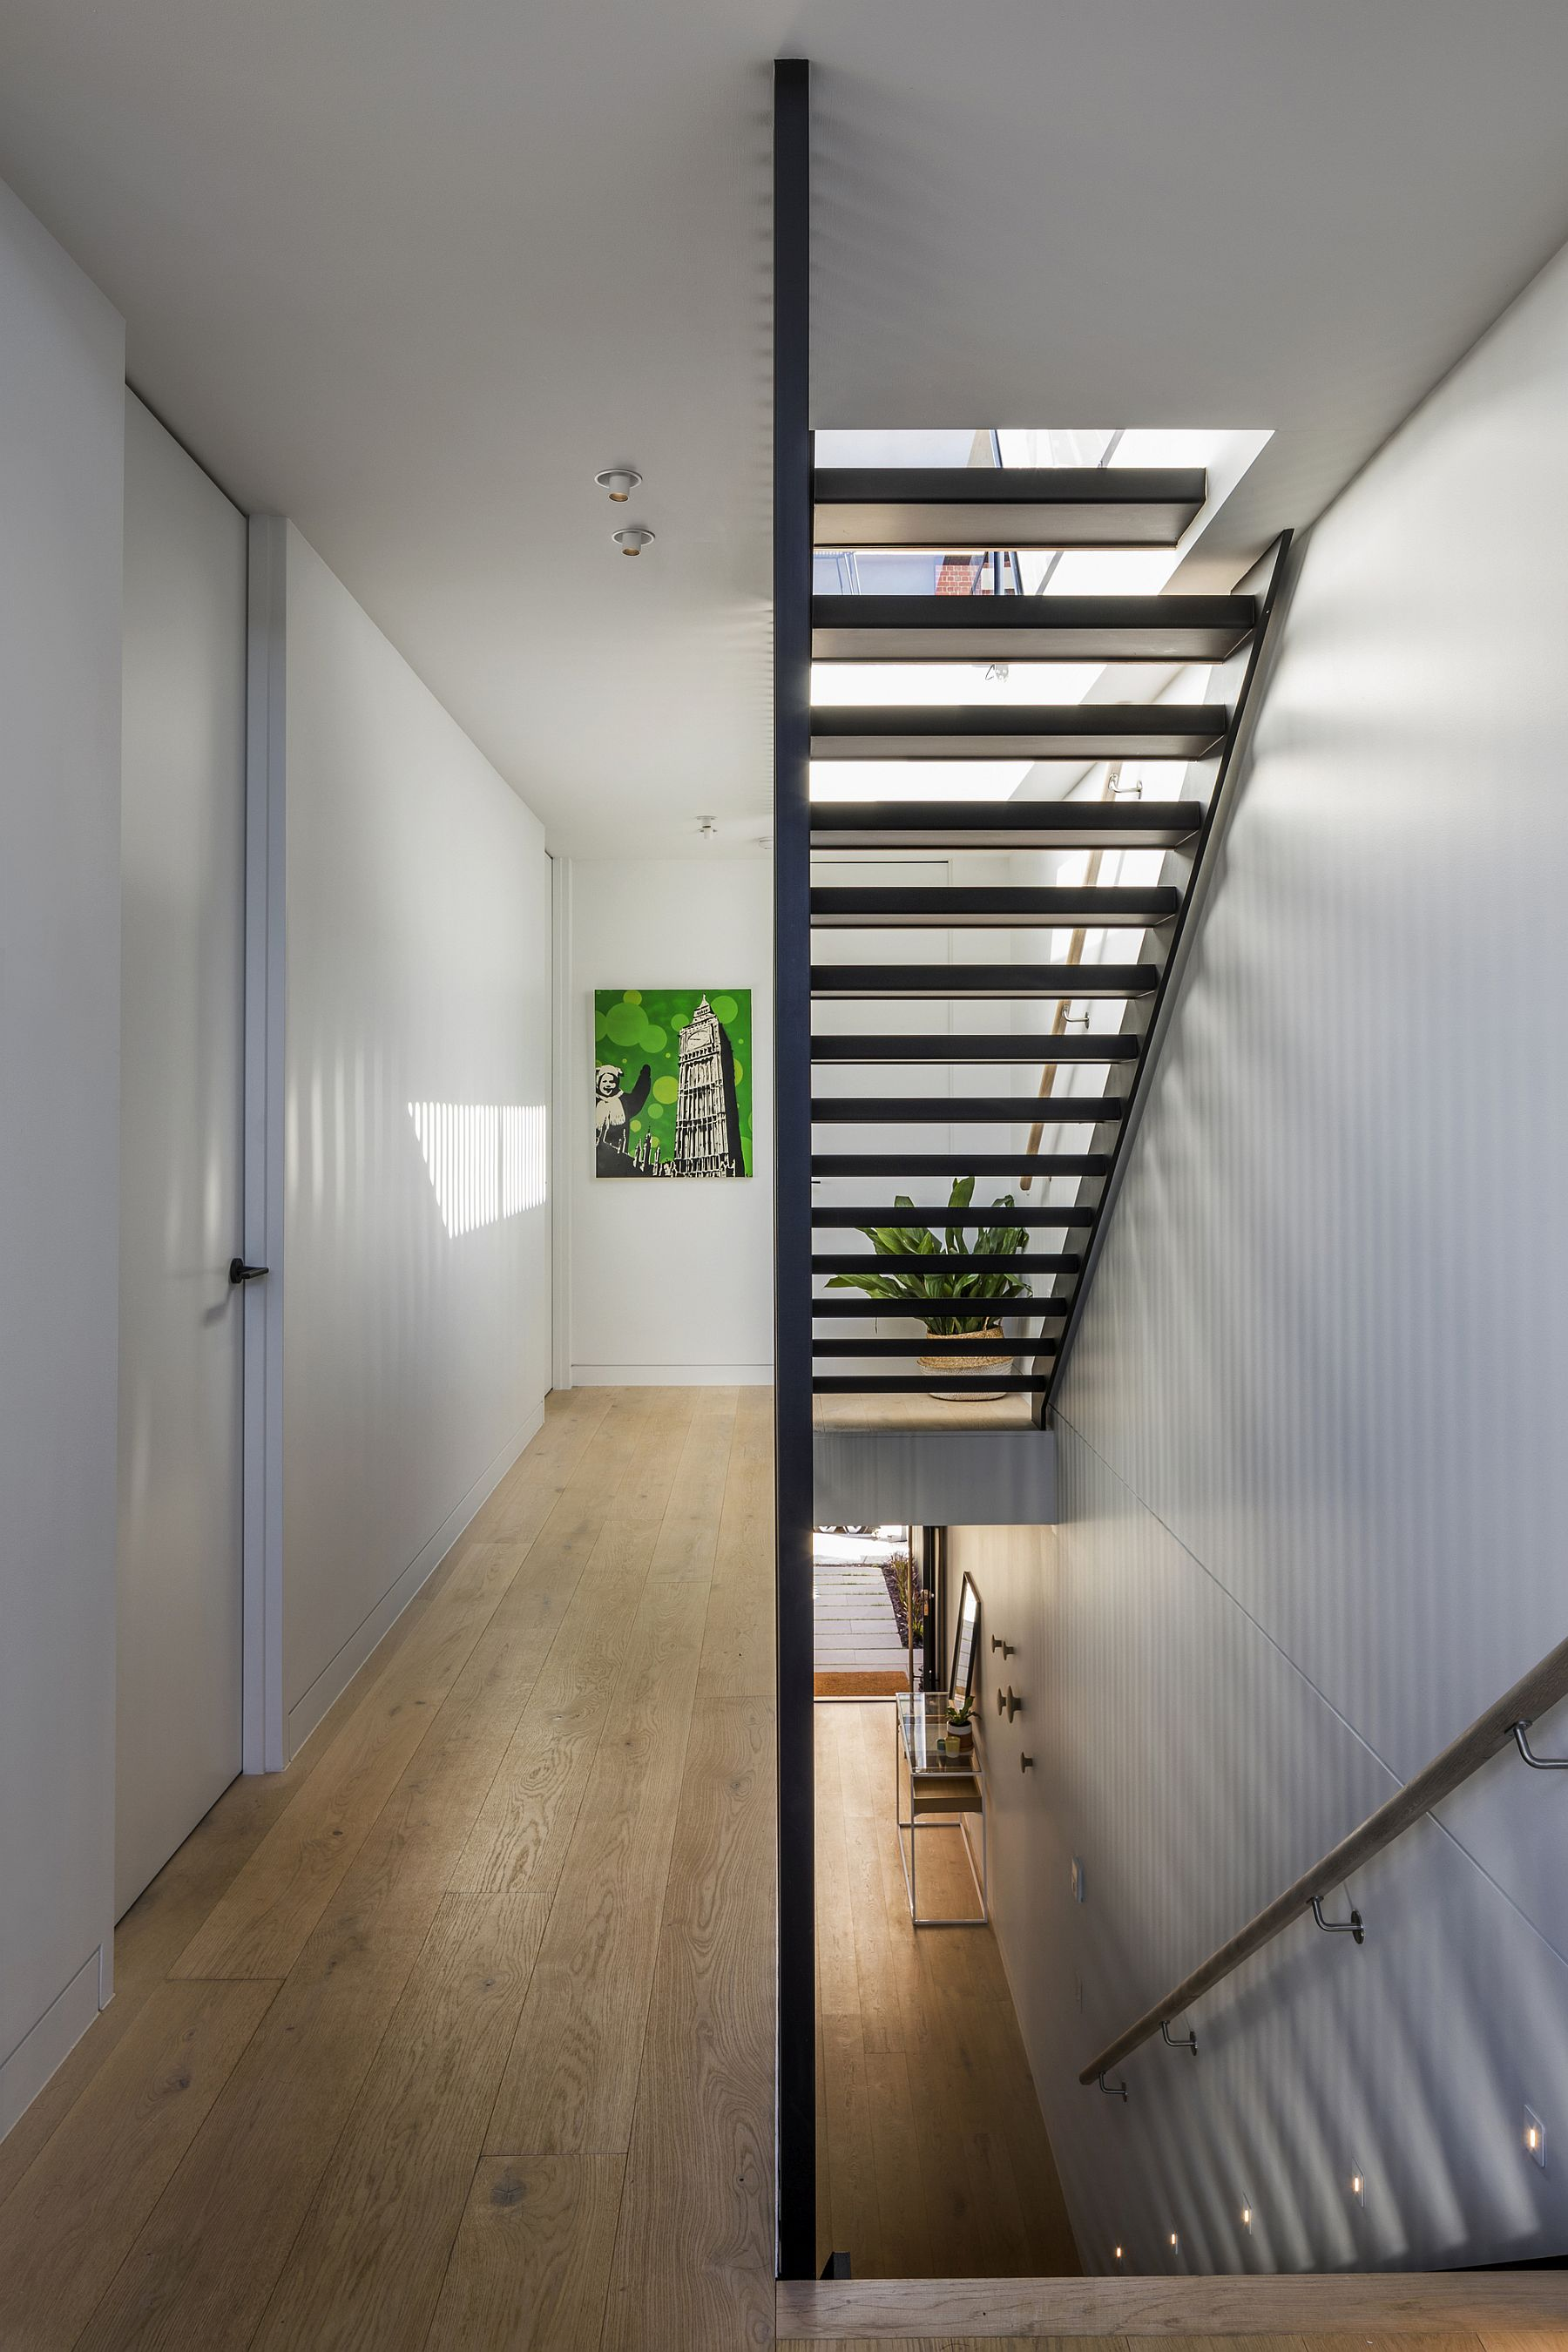 Design of the staircase also brings in ample natural light